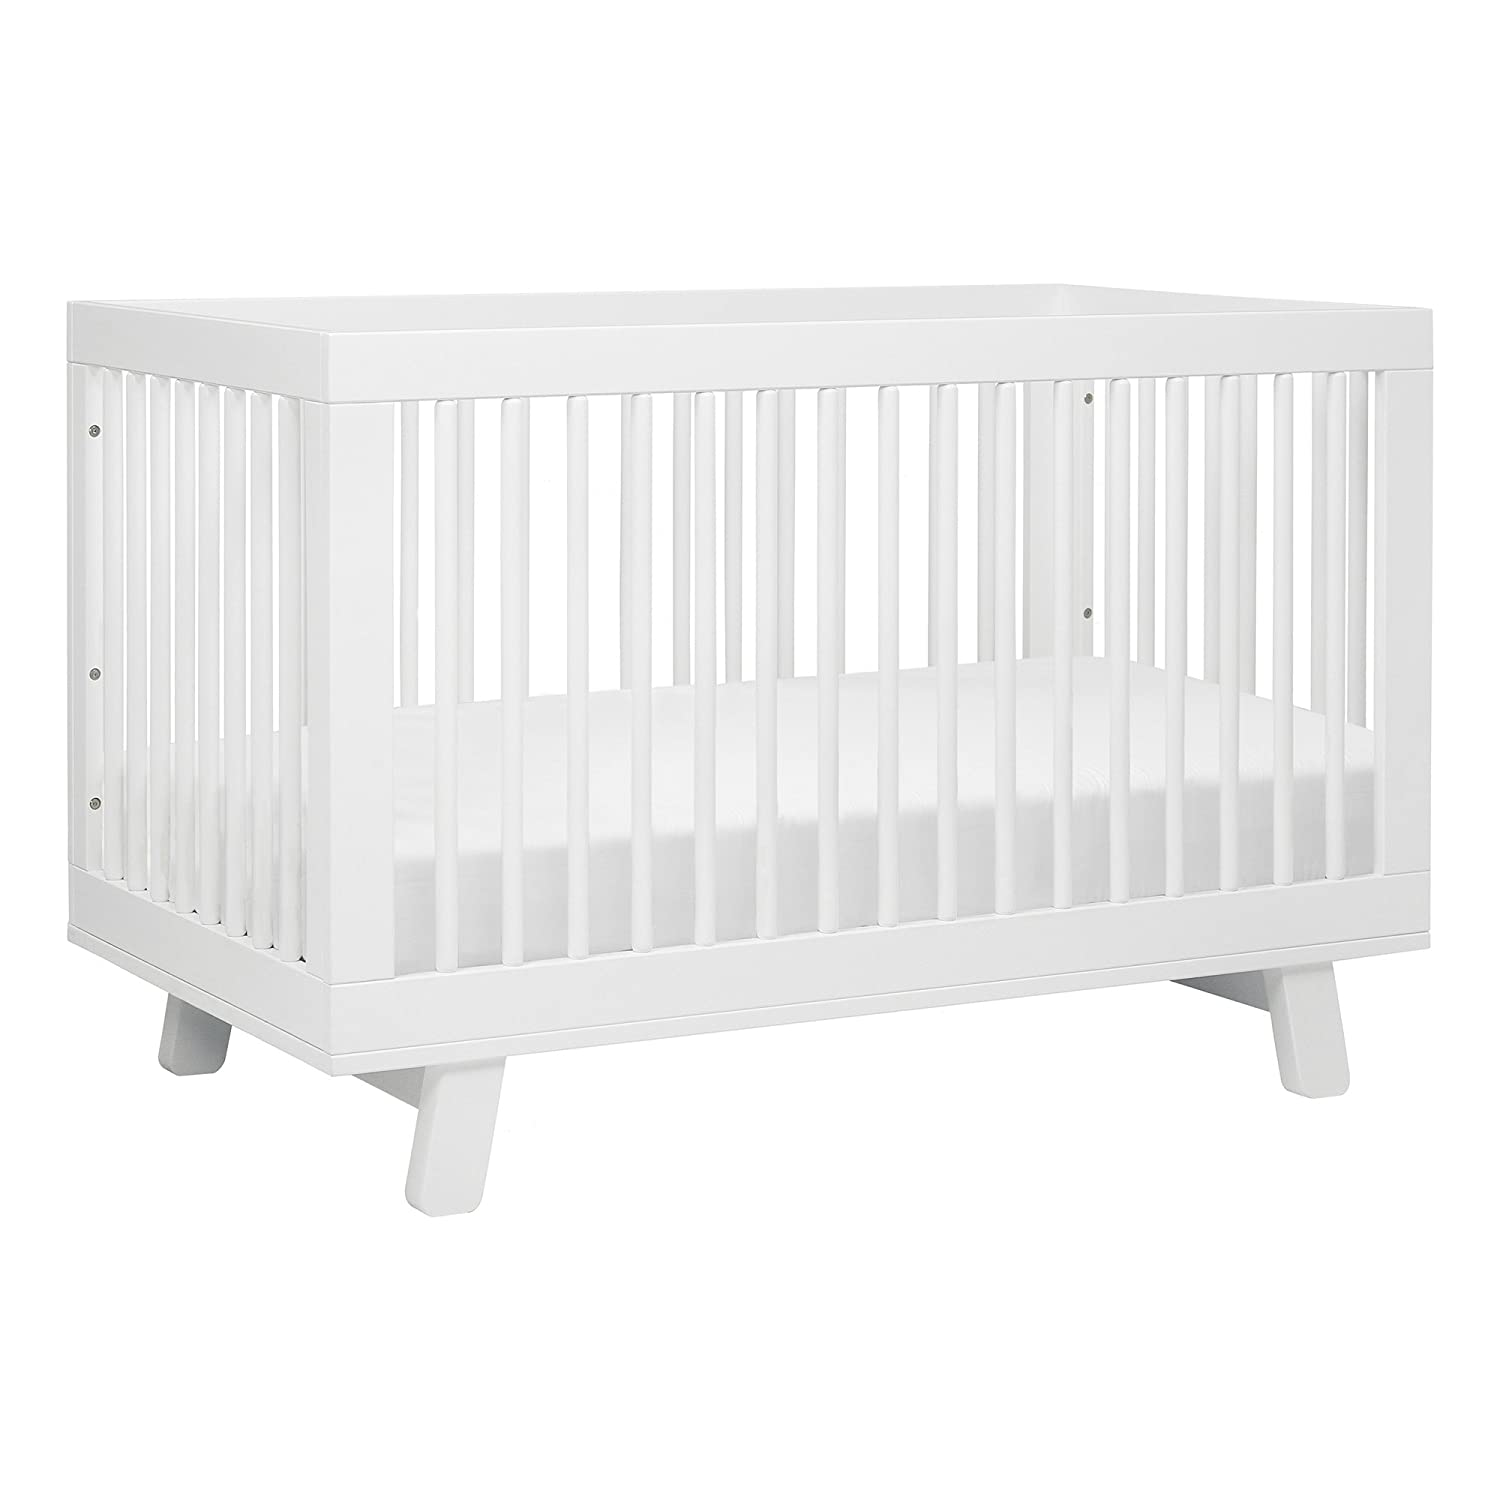 amazoncom babyletto hudson 3 in 1 convertible crib with toddler rail white baby babyletto furniture